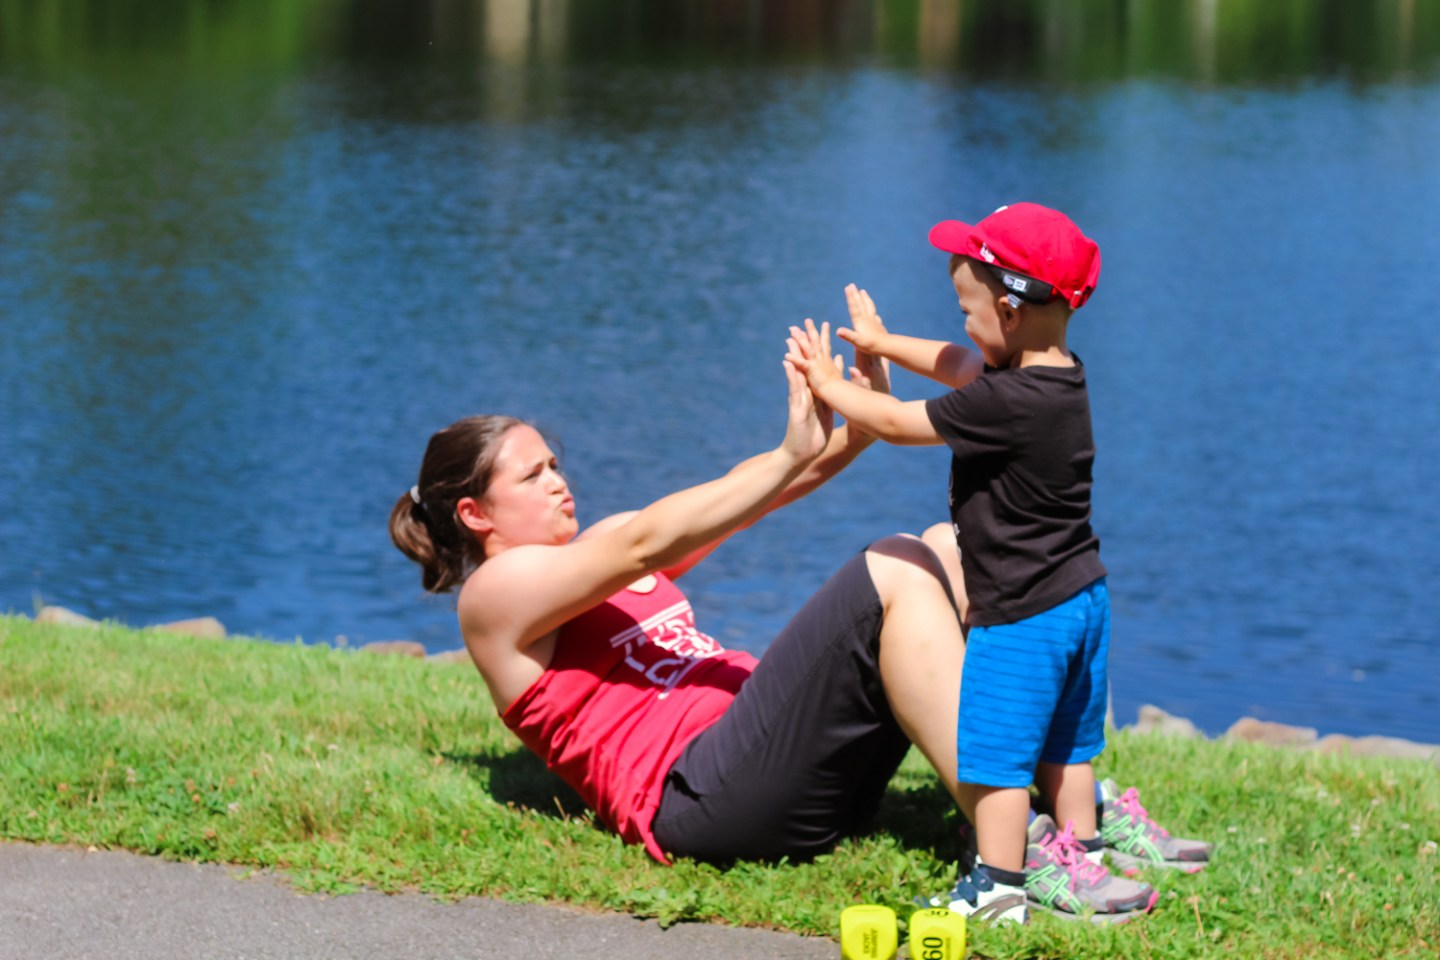 simple exercise dice workout that is perfect for busy moms of toddlers featured by popular DC mommy blogger Baby Castan on Board